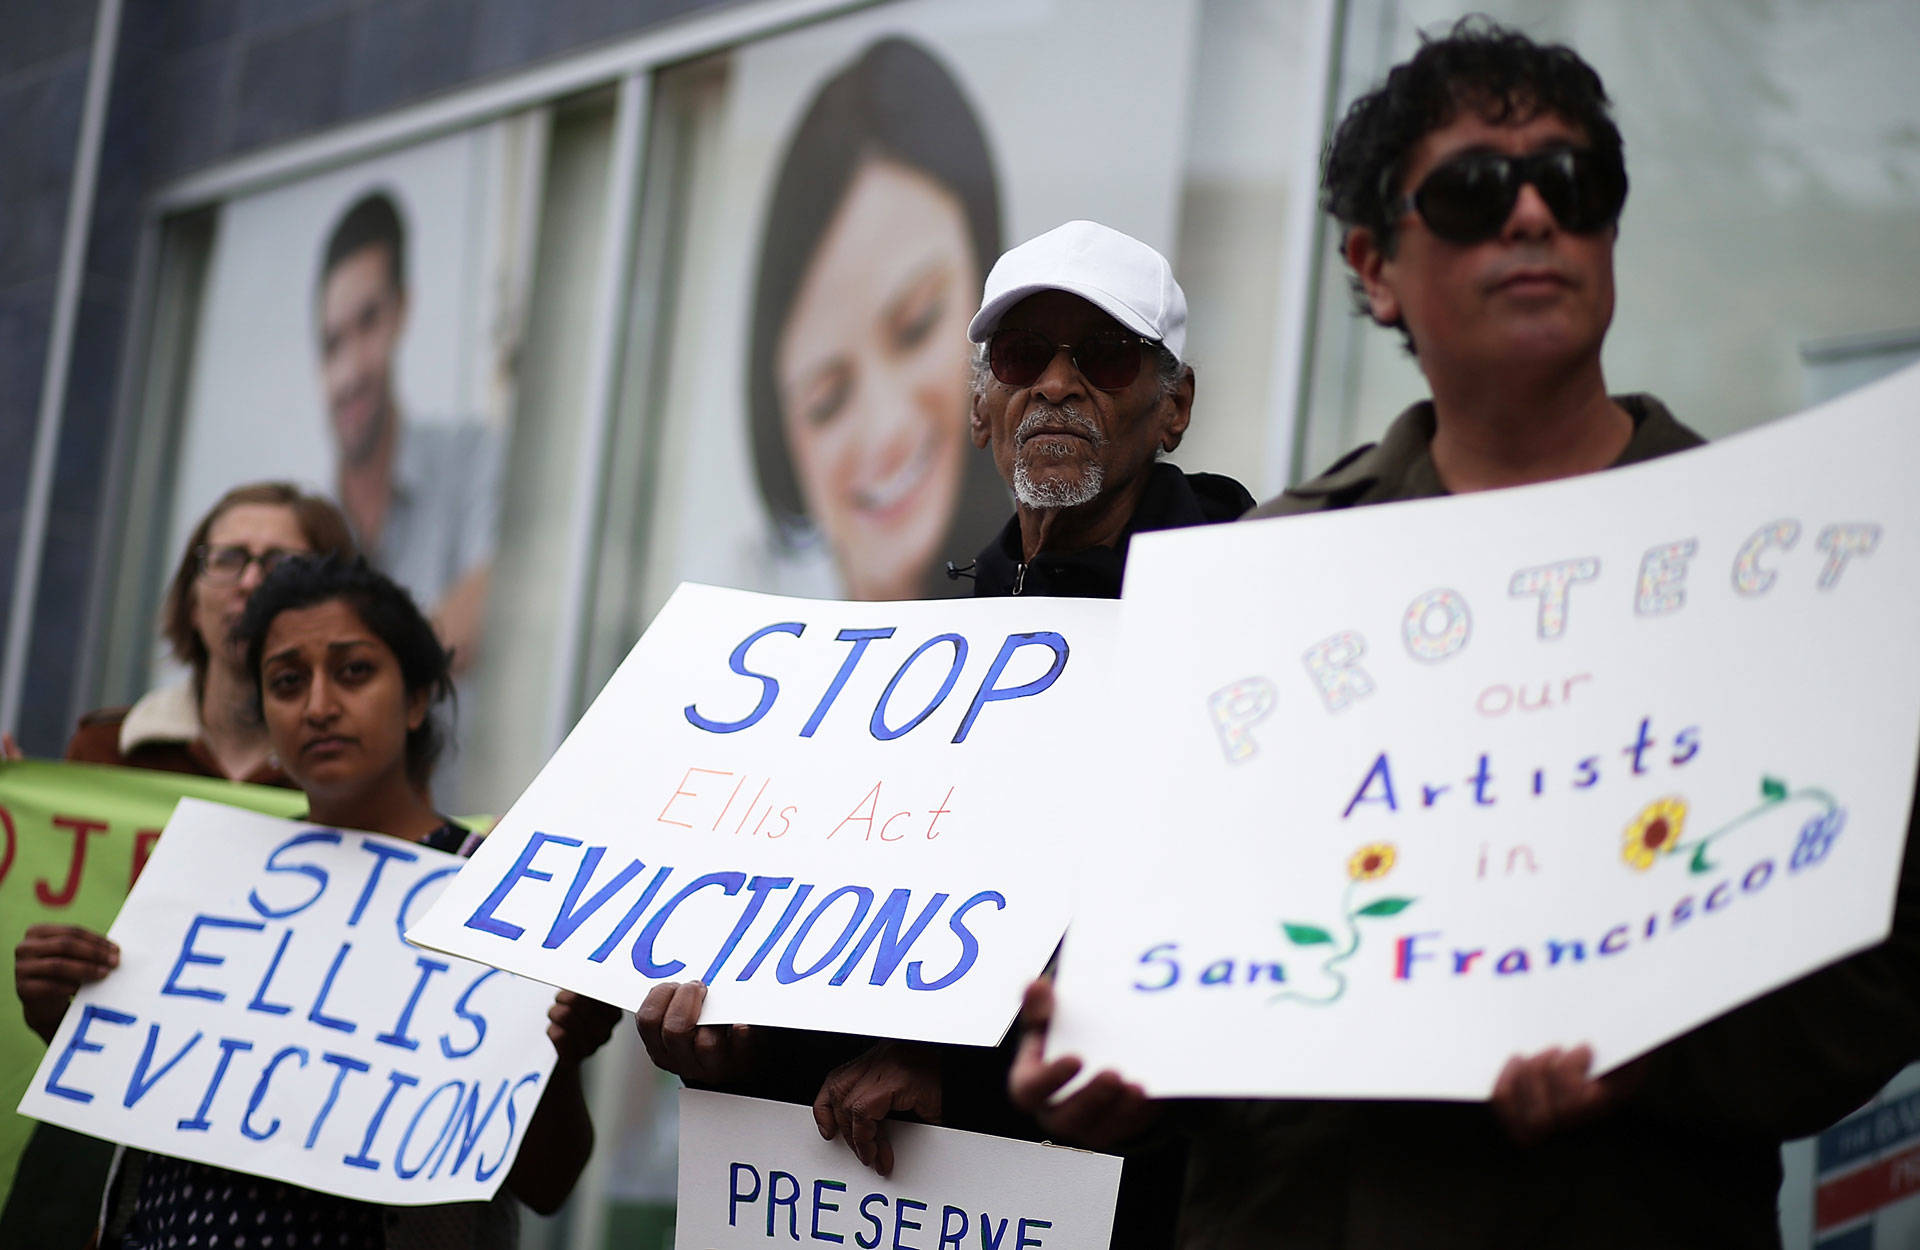 Activists and tenants of 1049 Market Street hold signs as they stage a protest against the landlord's attempts to evict them from the building on March 8, 2016 in San Francisco. Justin Sullivan/Getty Images